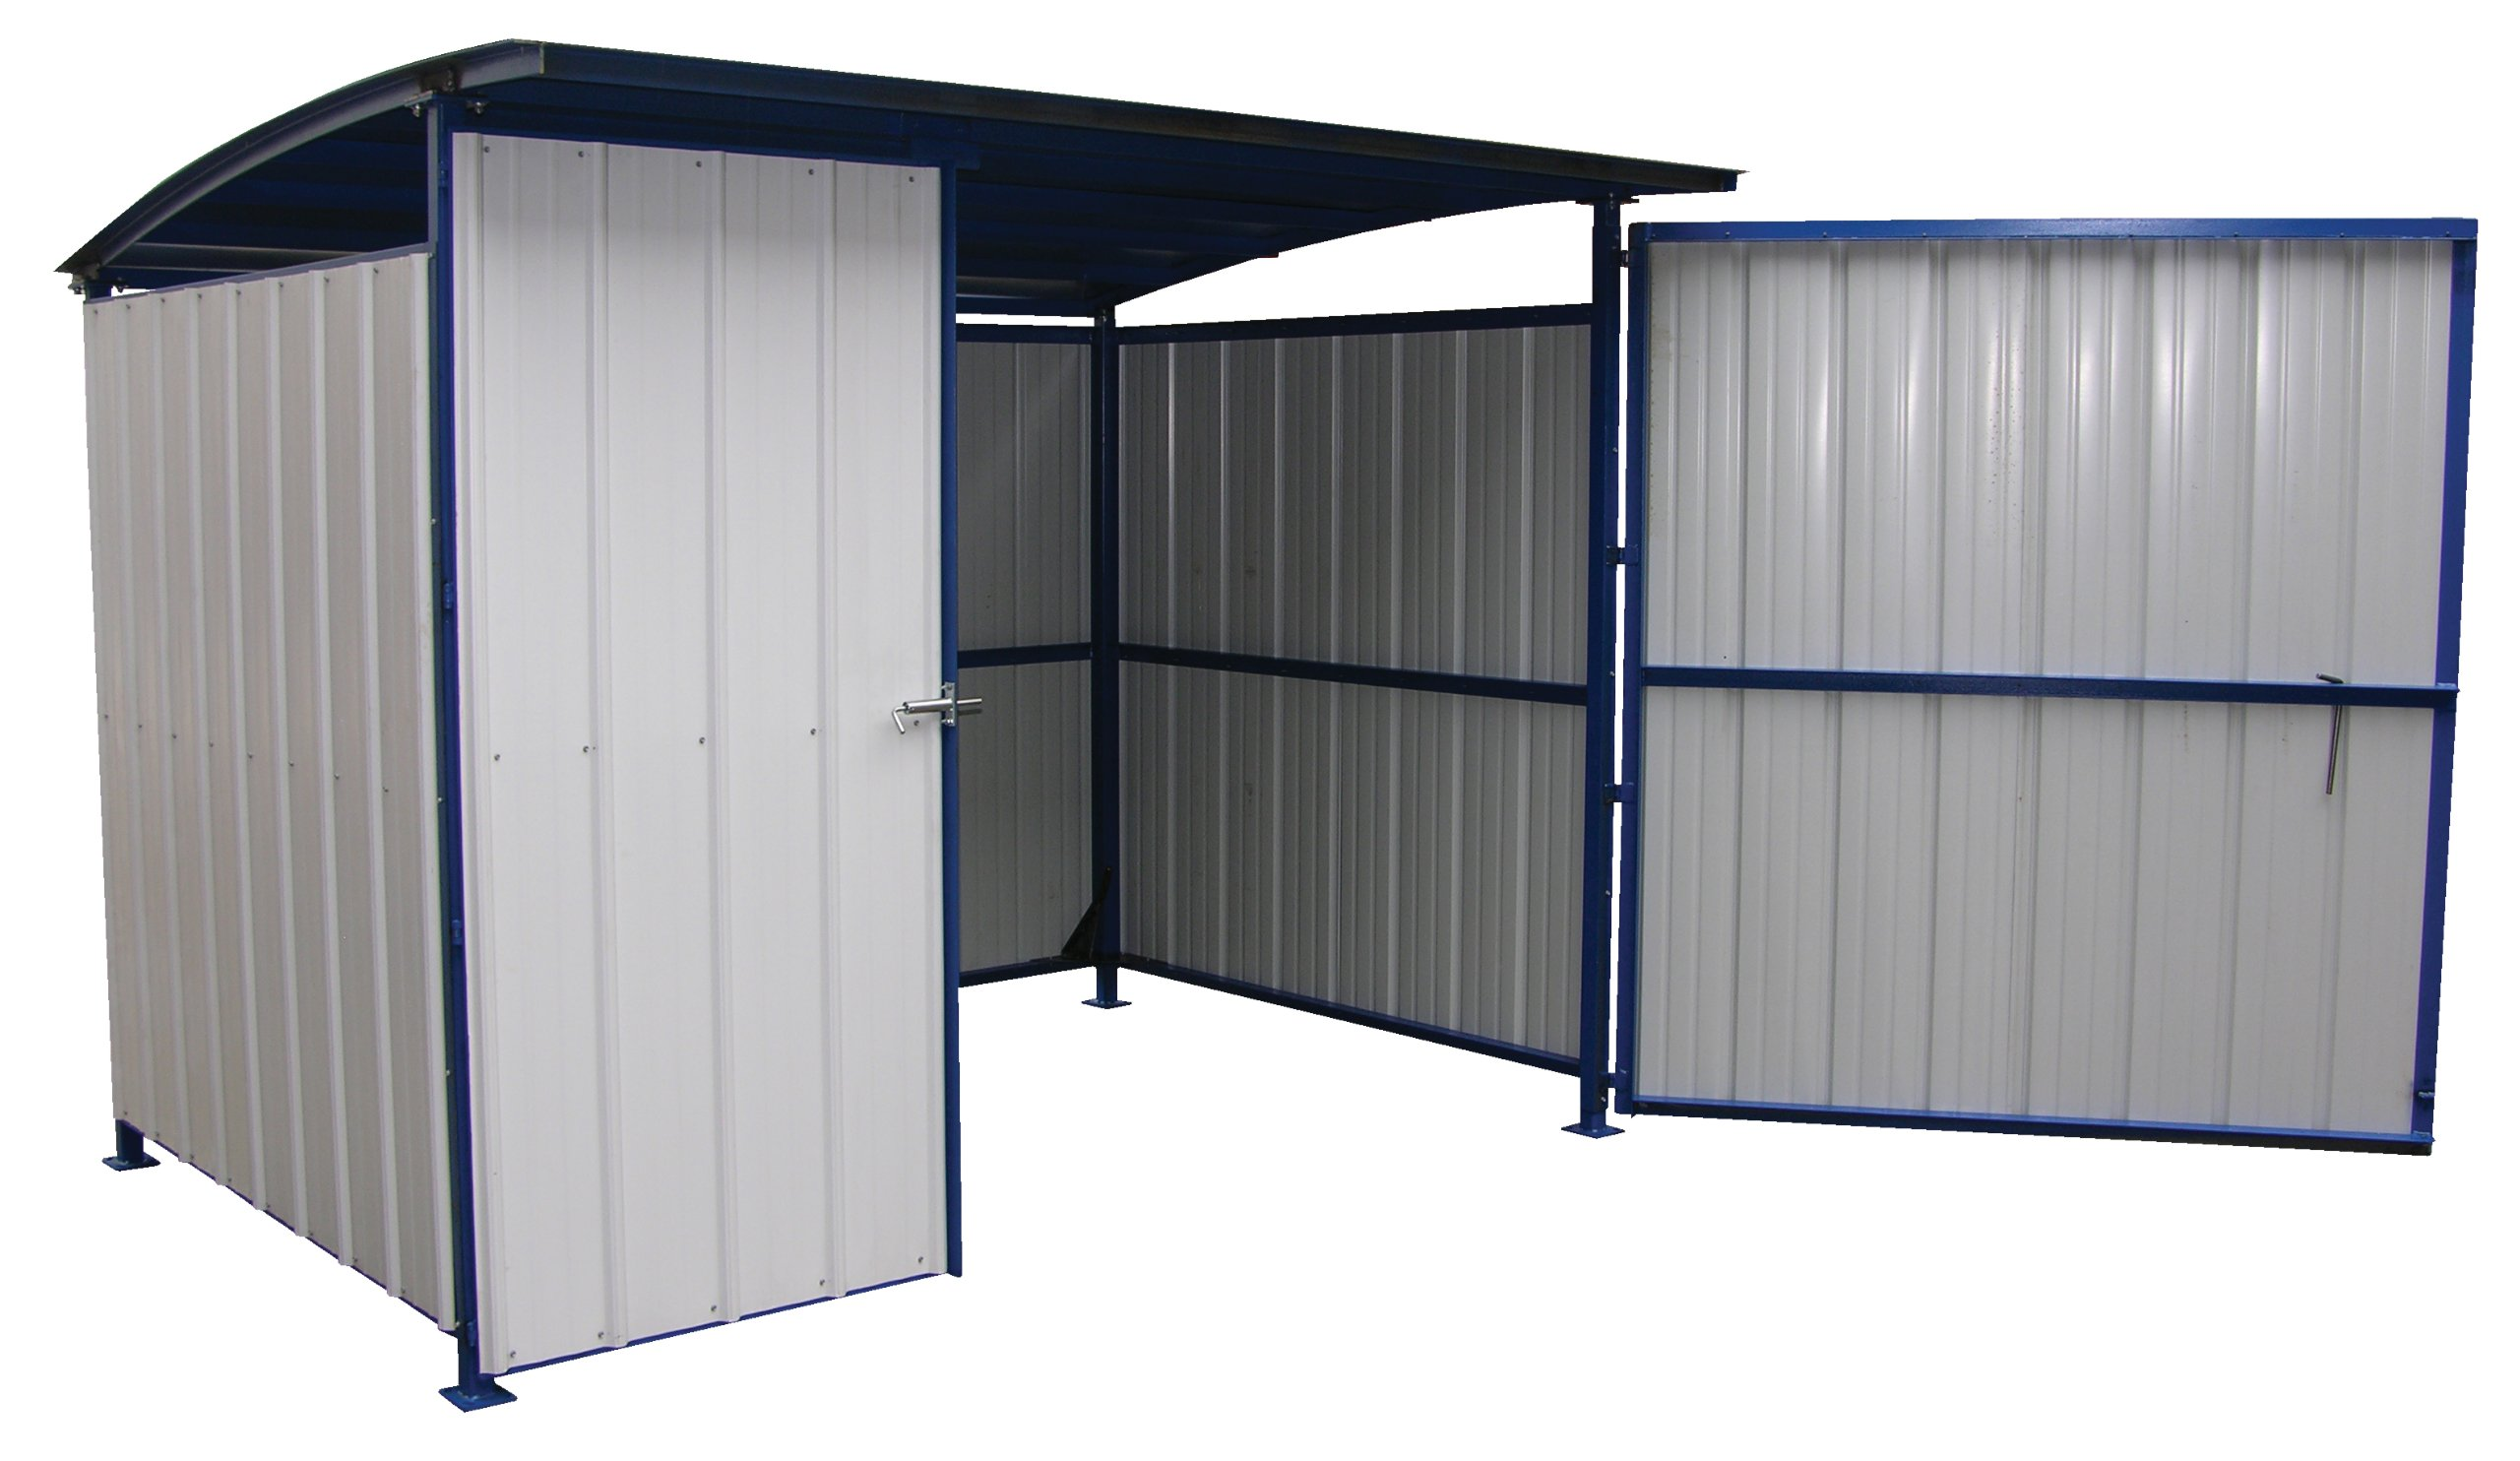 Vestil MDS-96-DR Multi Duty Shed with Doors, Heavy Duty Steel, 120'' Width, 95-1/2'' Depth, 90'' Height